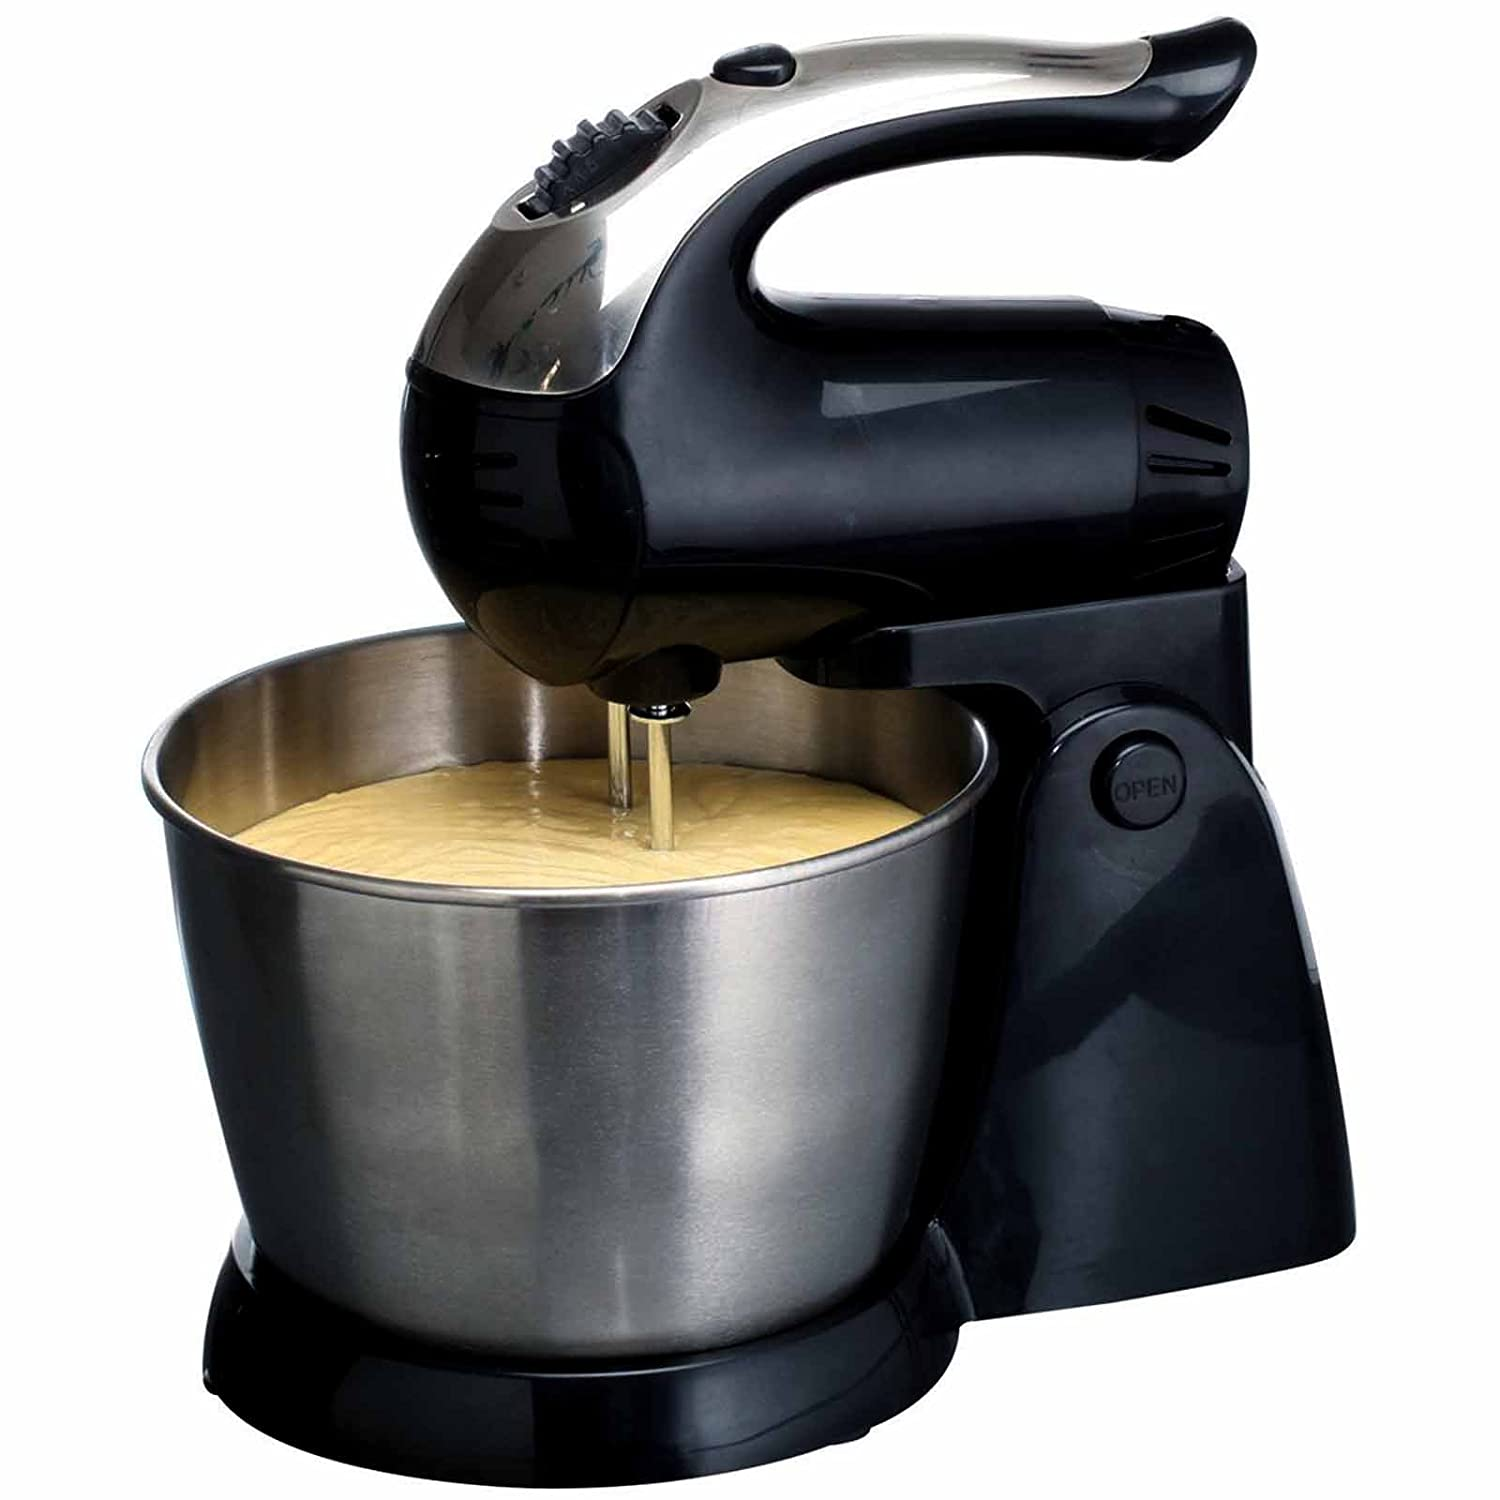 brentwood appliances sm 1153 5 speed stand mixer